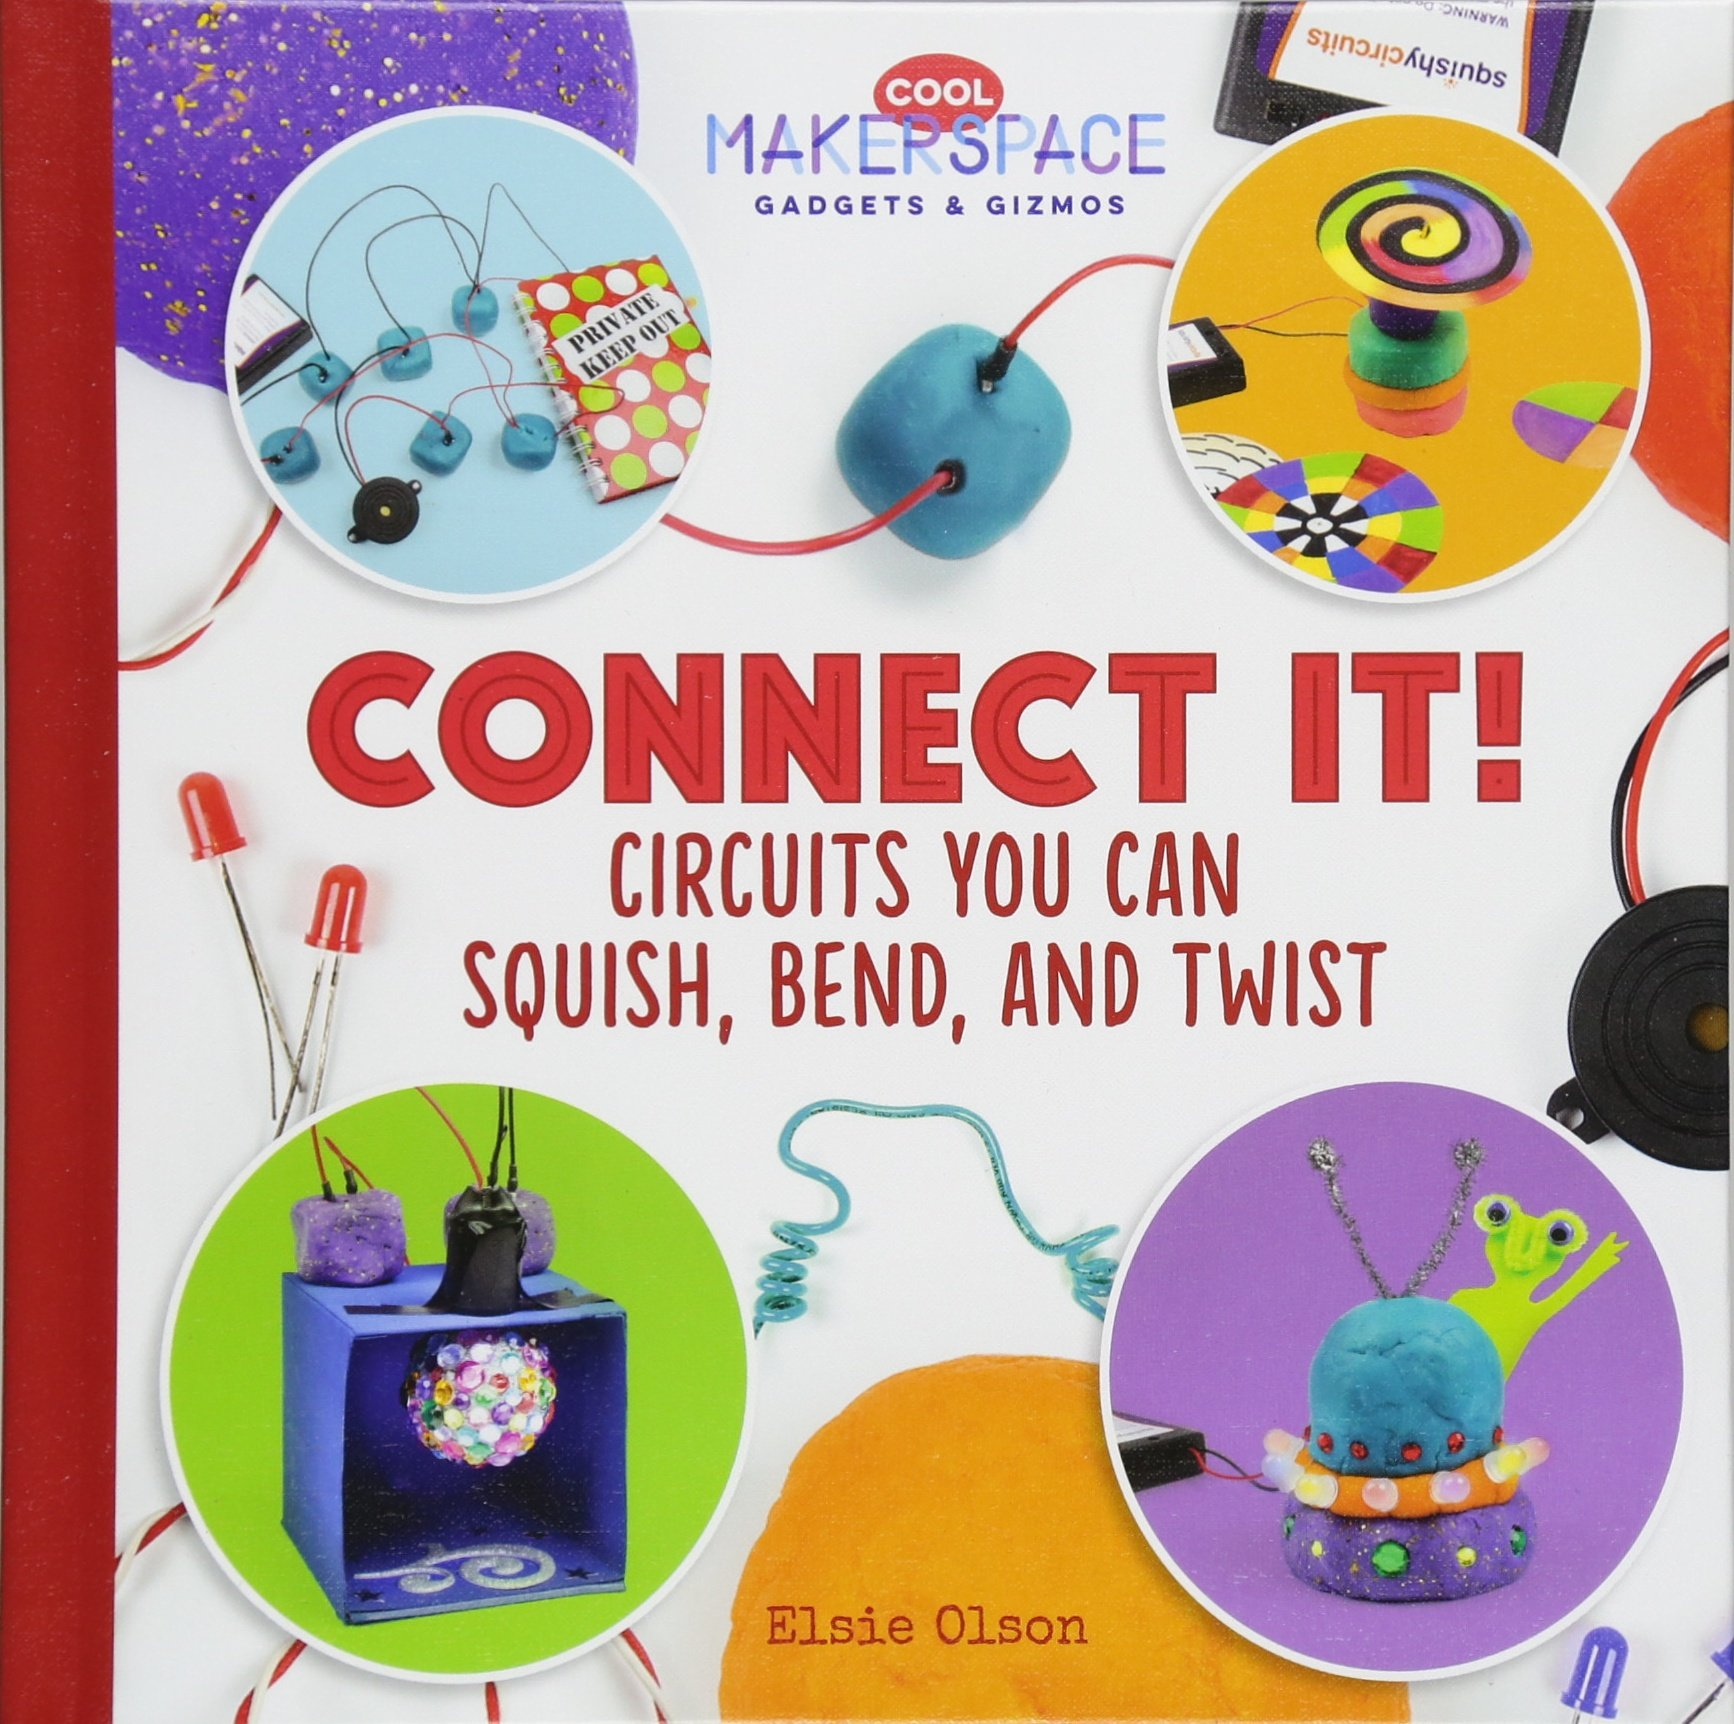 Connect It!: Circuits You Can Squish, Bend, and Twist (Cool Makerspace Gadgets & Gizmos) ebook